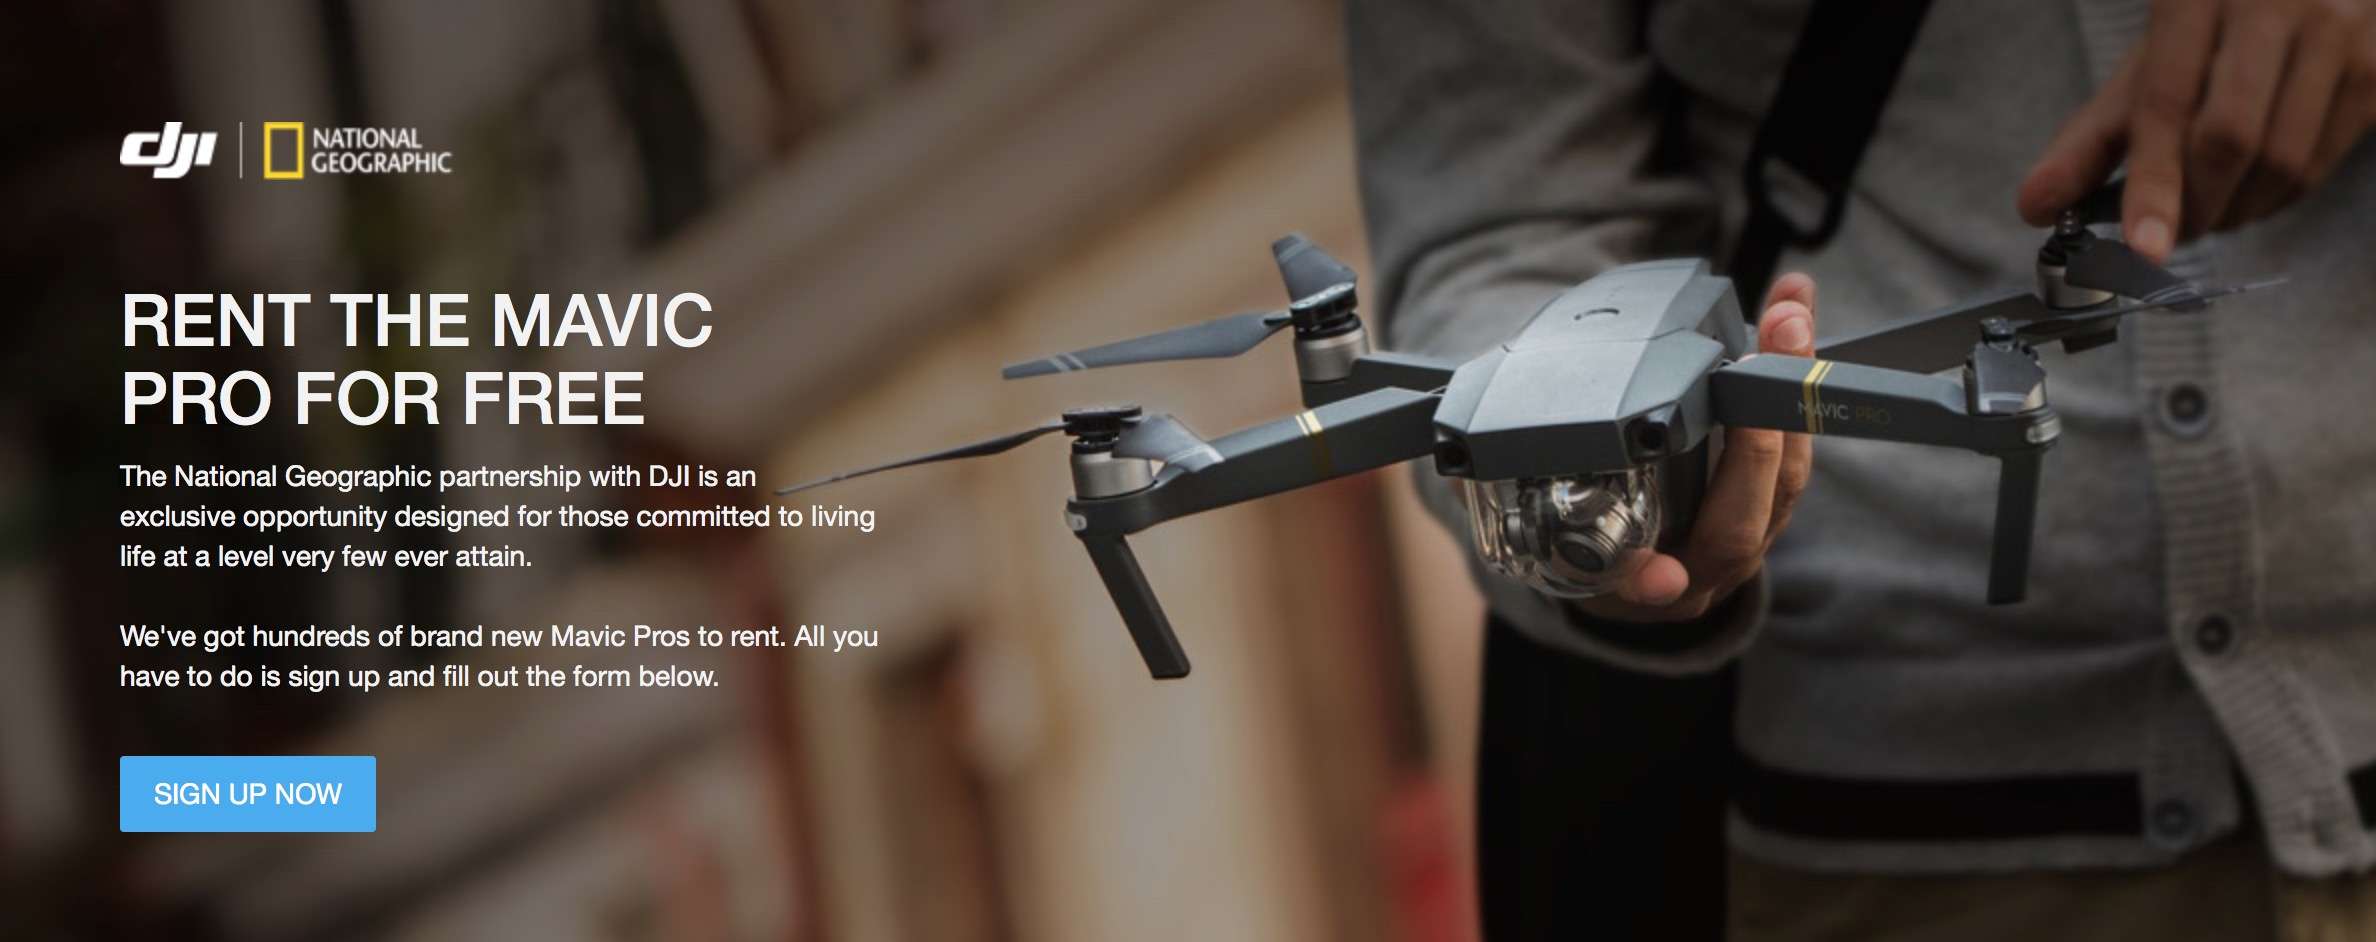 DJI and National Geographic joined forced in photo contest and free drone rental program